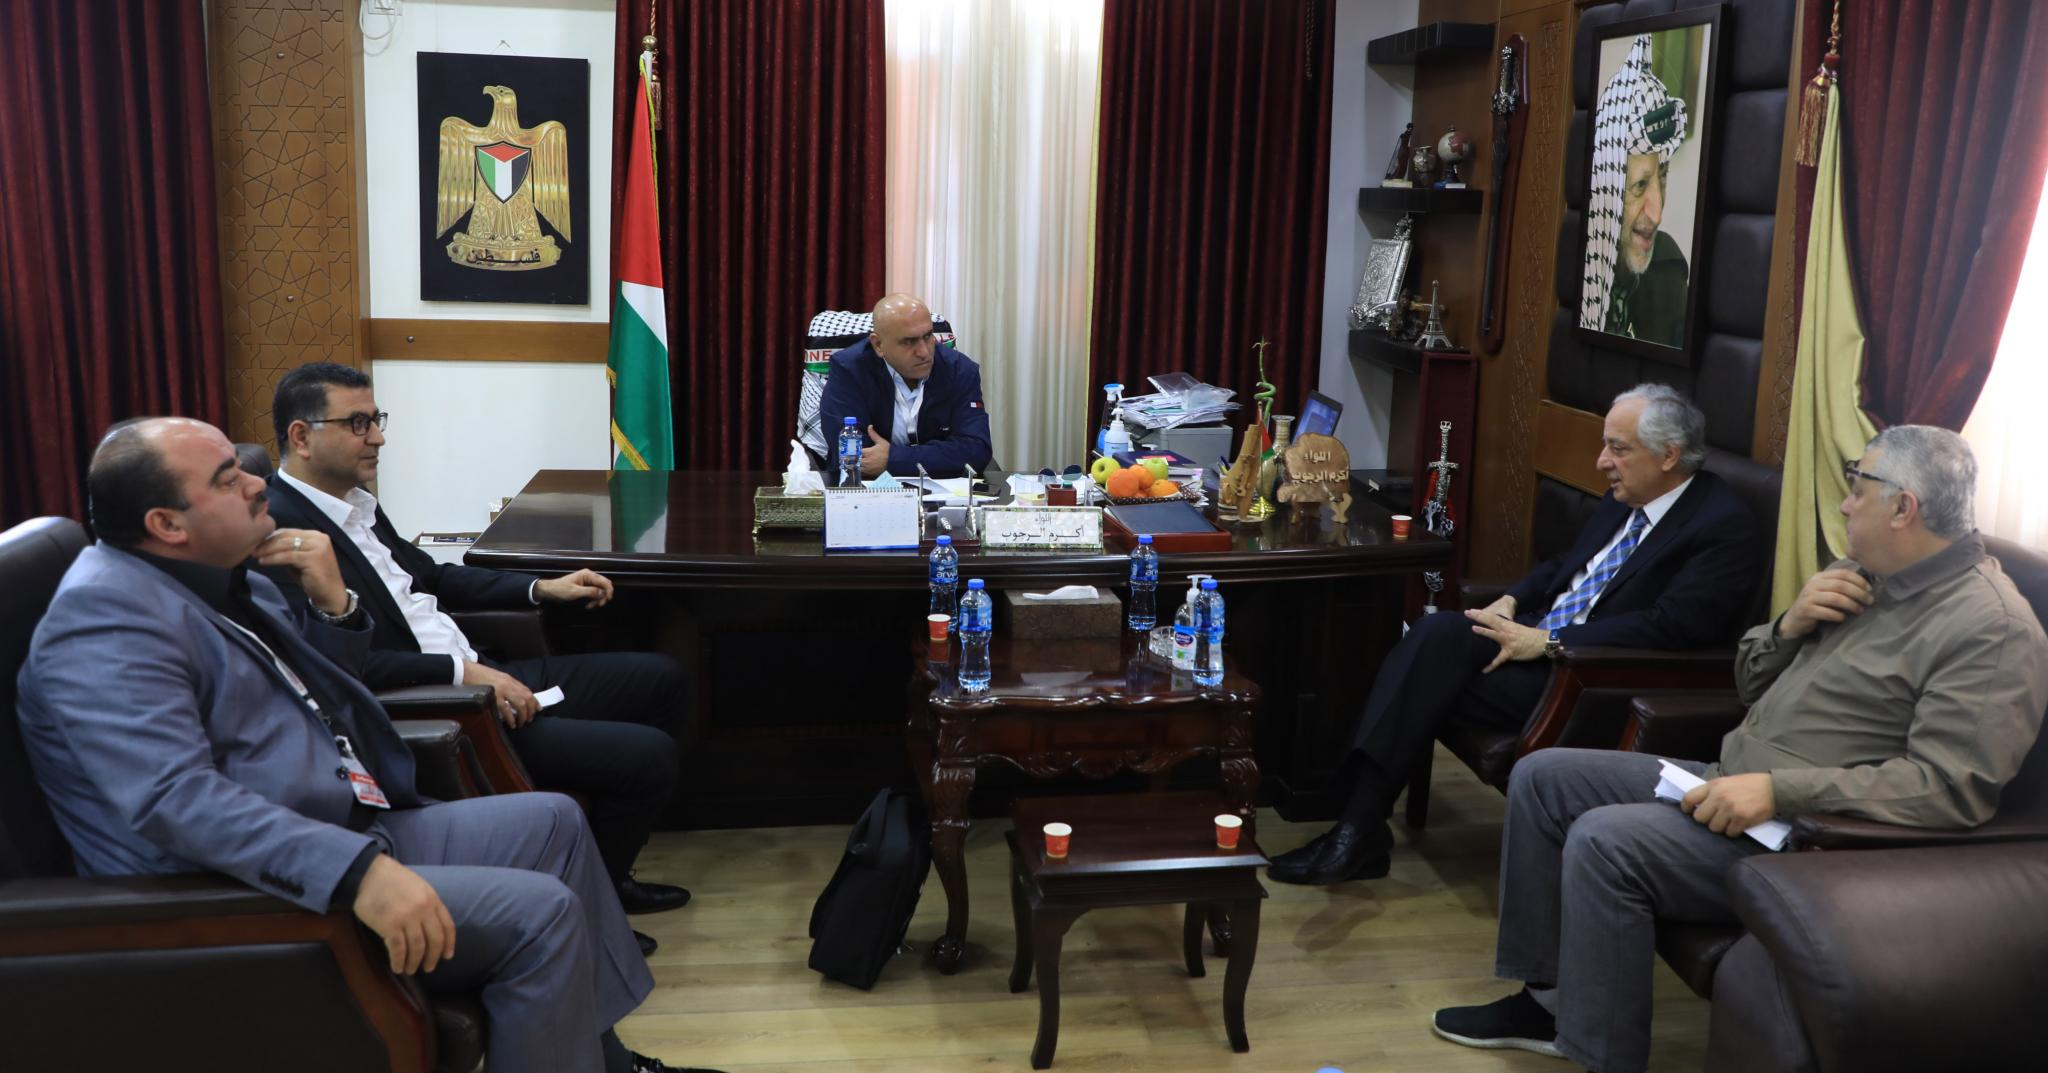 During the meeting between the university delegation and Jenin governor